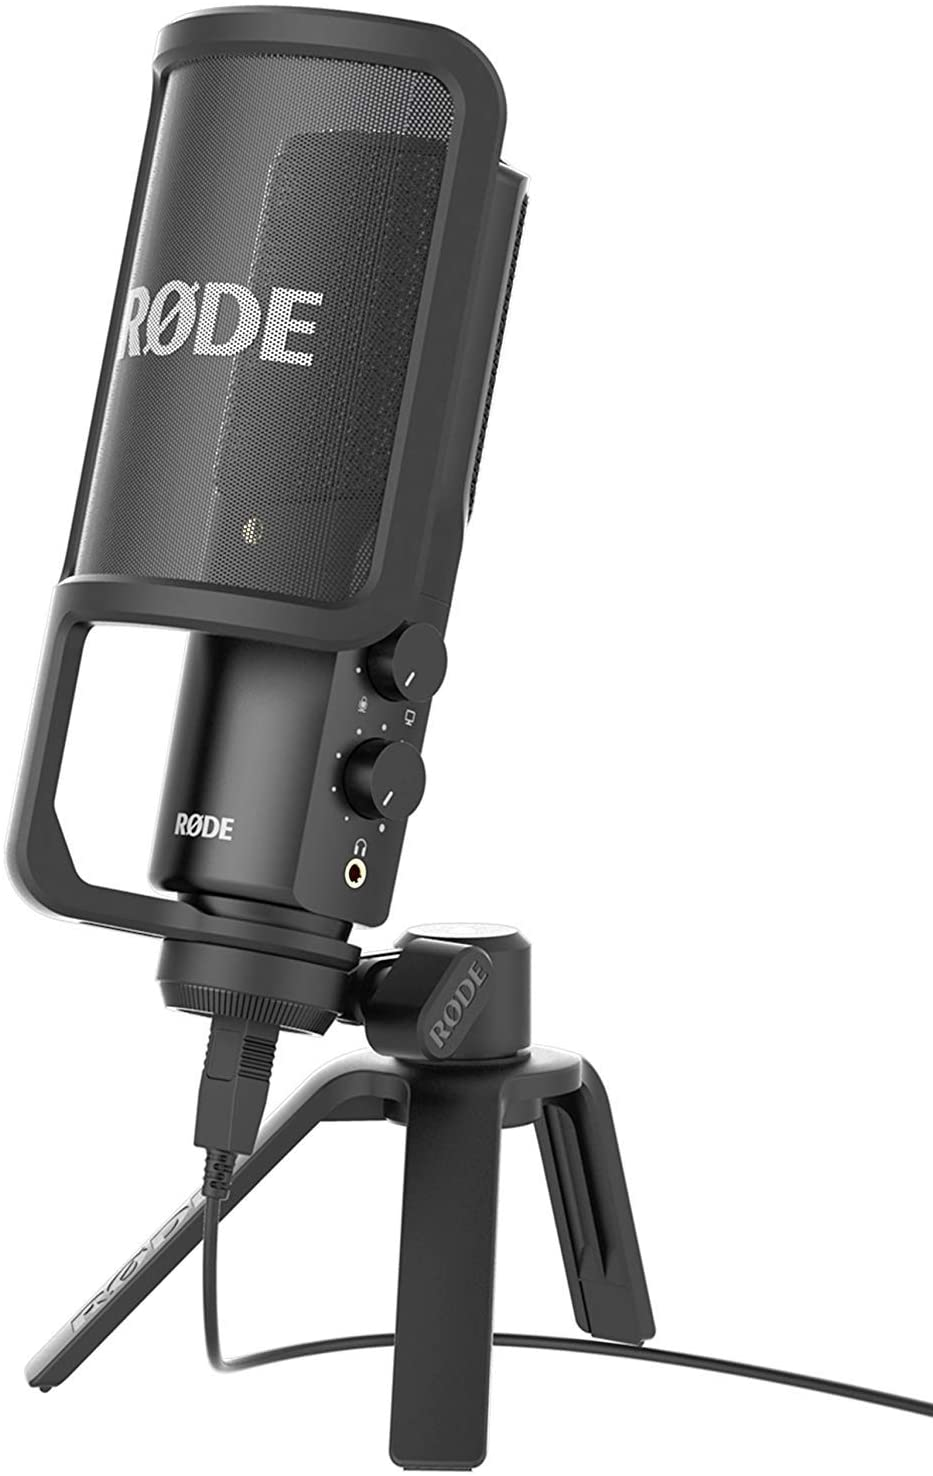 619eUD65k3L. AC SL1500 Best Budget Microphone for Streaming - Top 8 Products and Reviews